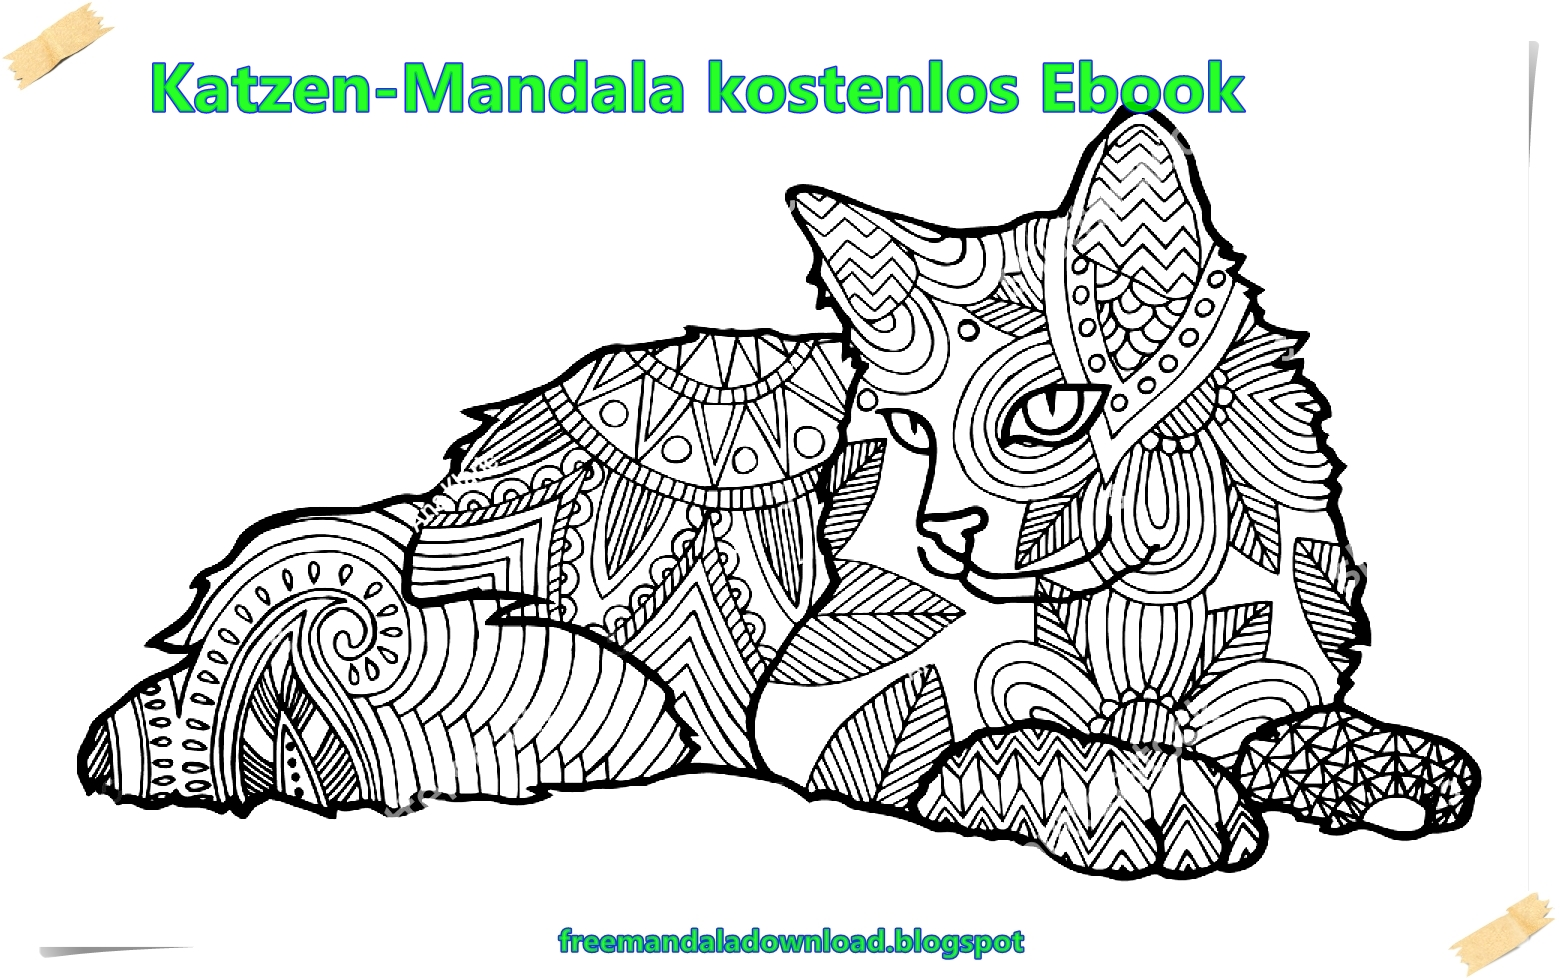 katzen mandala kostenlos ebook cats mandala free ebook free mandala. Black Bedroom Furniture Sets. Home Design Ideas